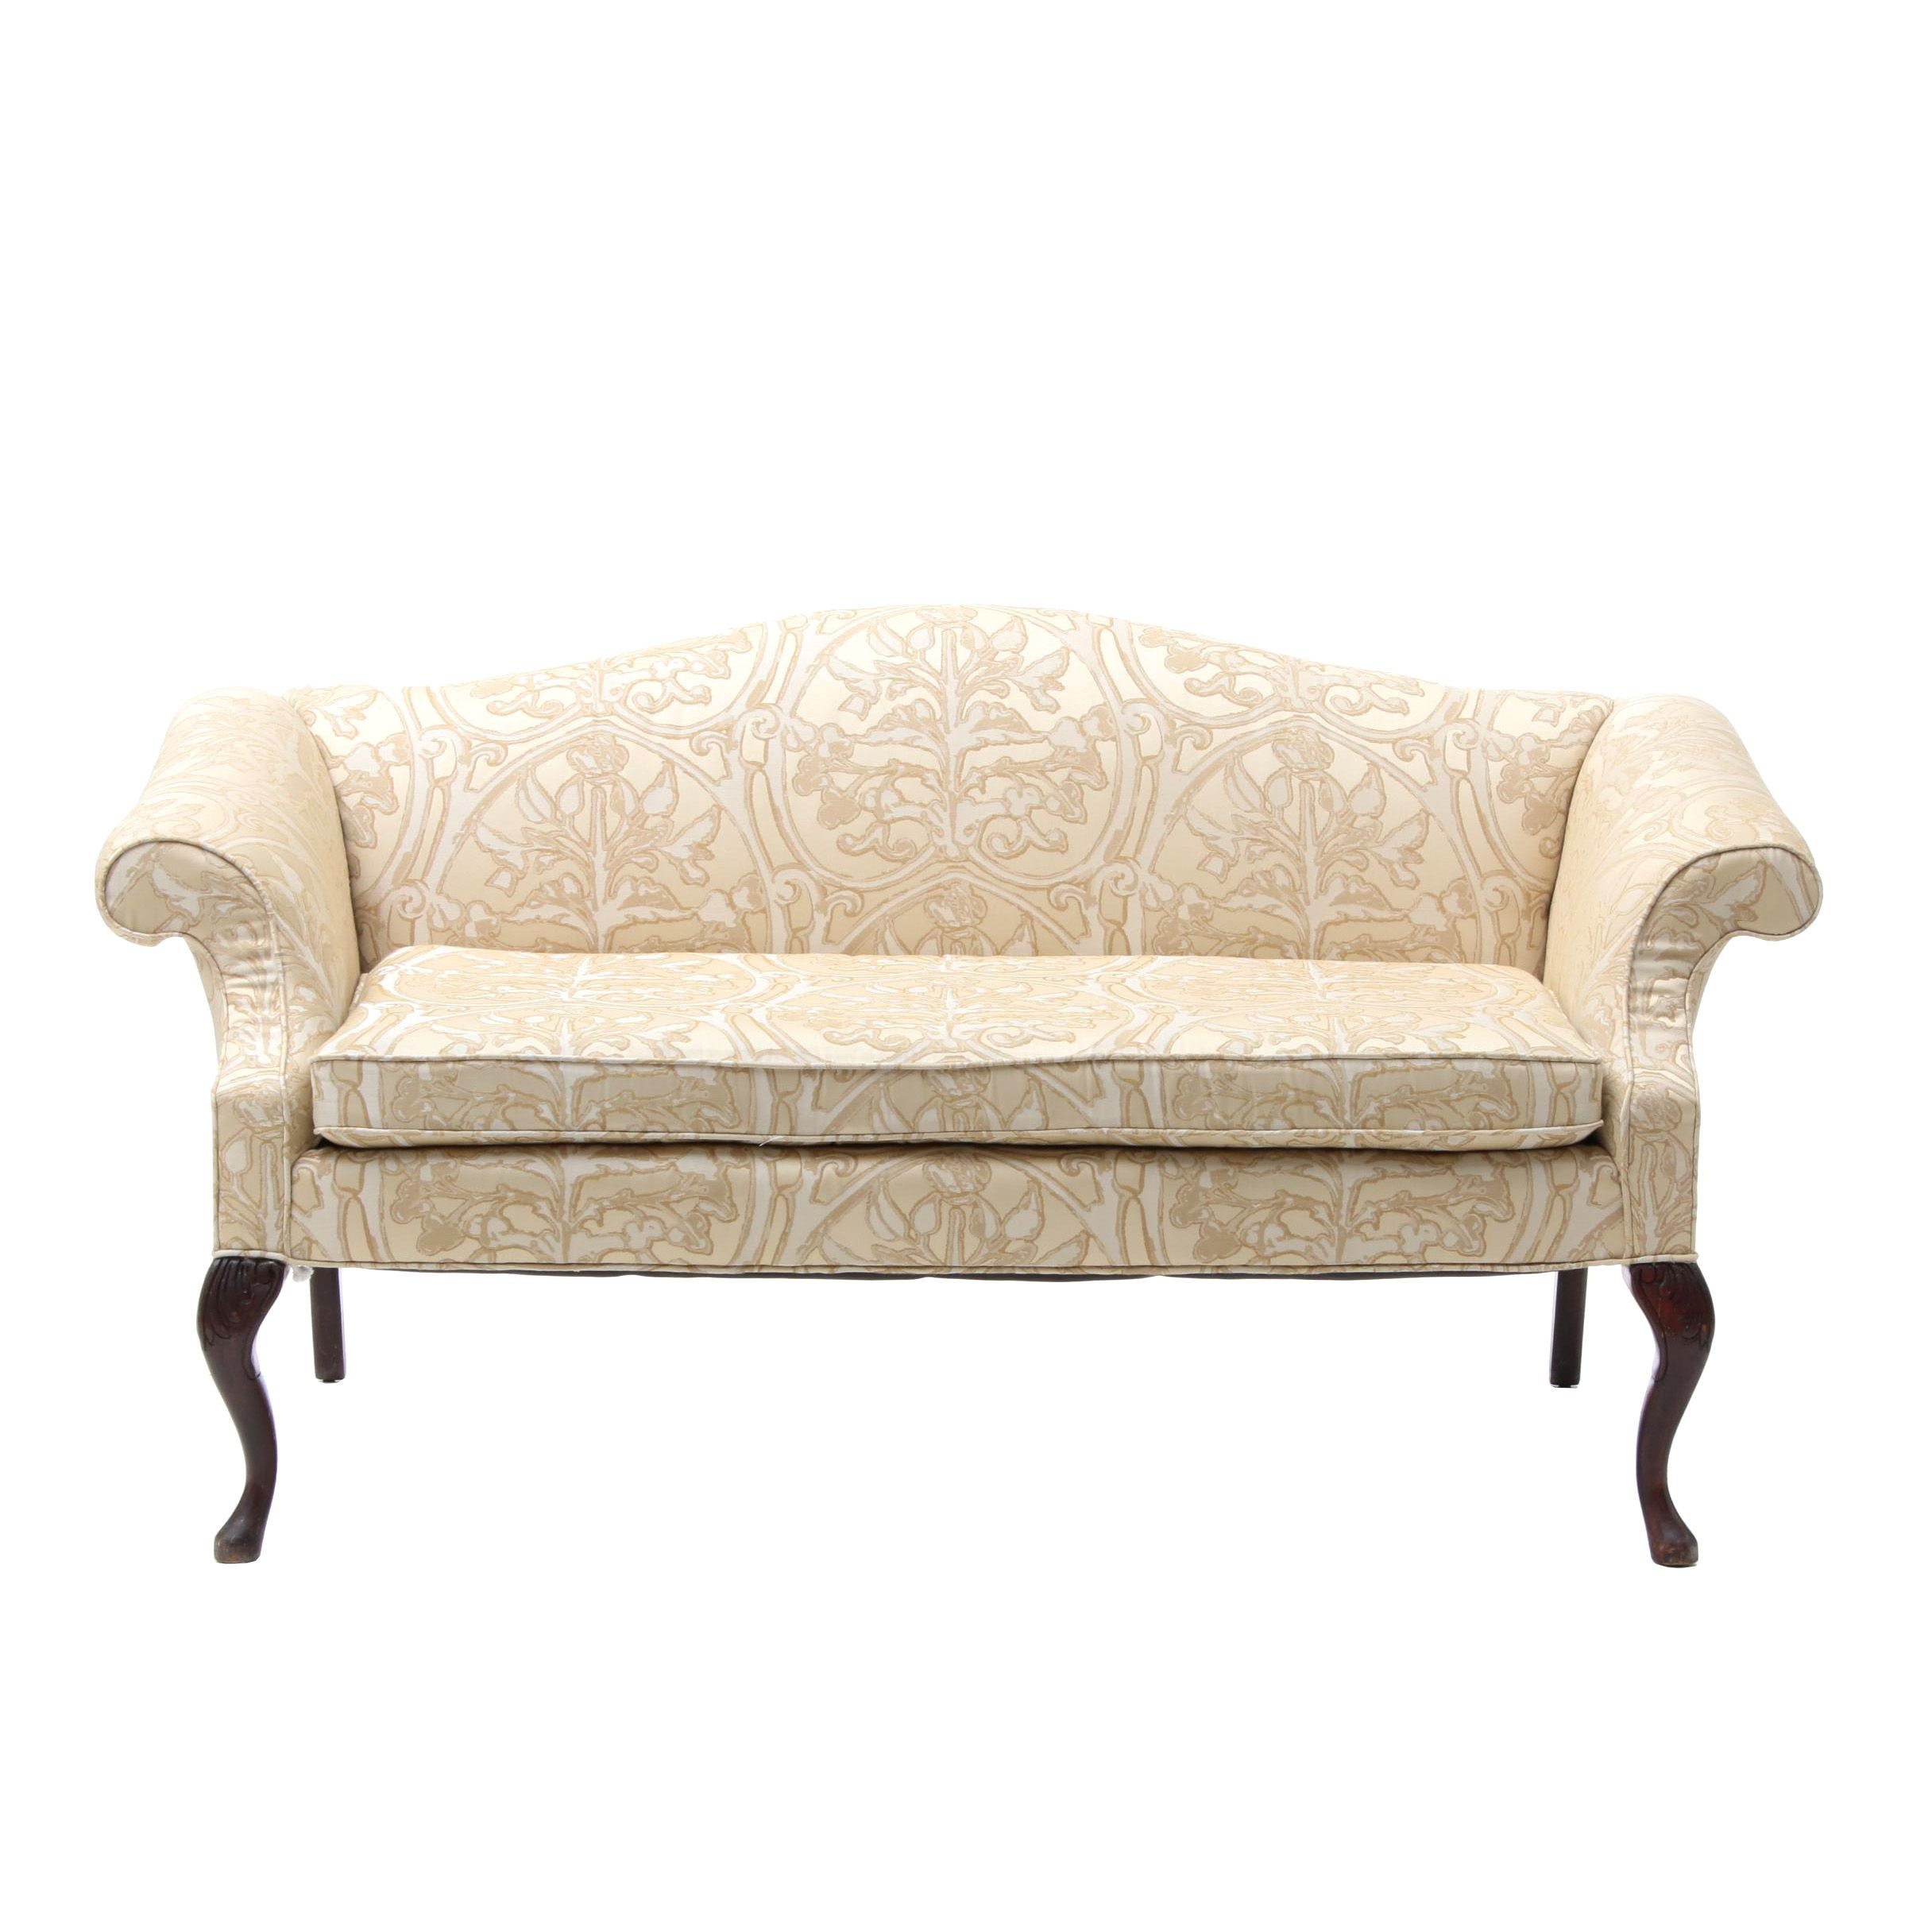 Queen Anne Style Love Seat